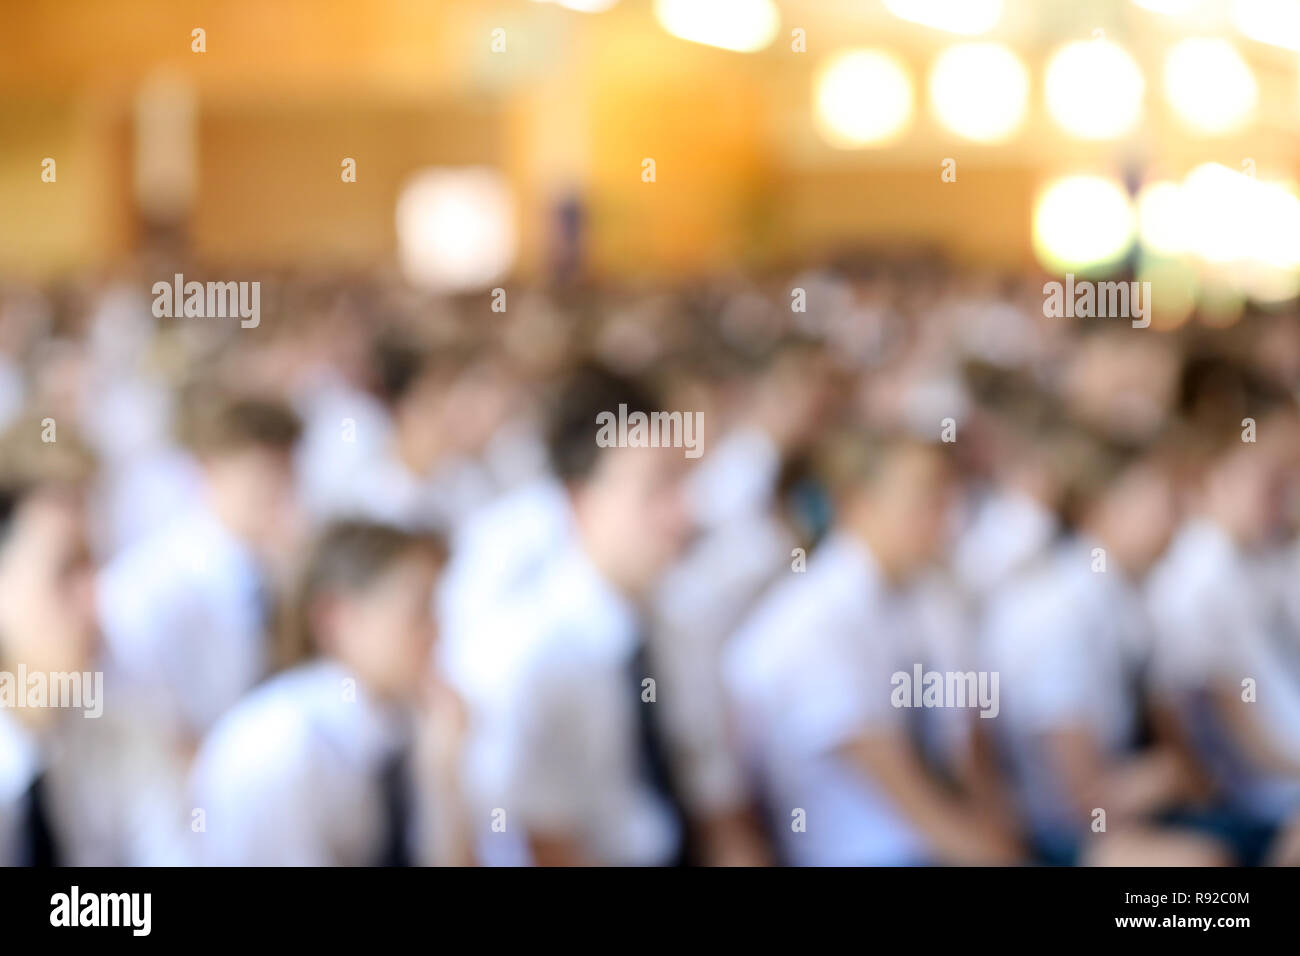 Deliberately out of focus blurred image of large hall full of high school students in white shirt and ties uniforms listening at assembly. - Stock Image